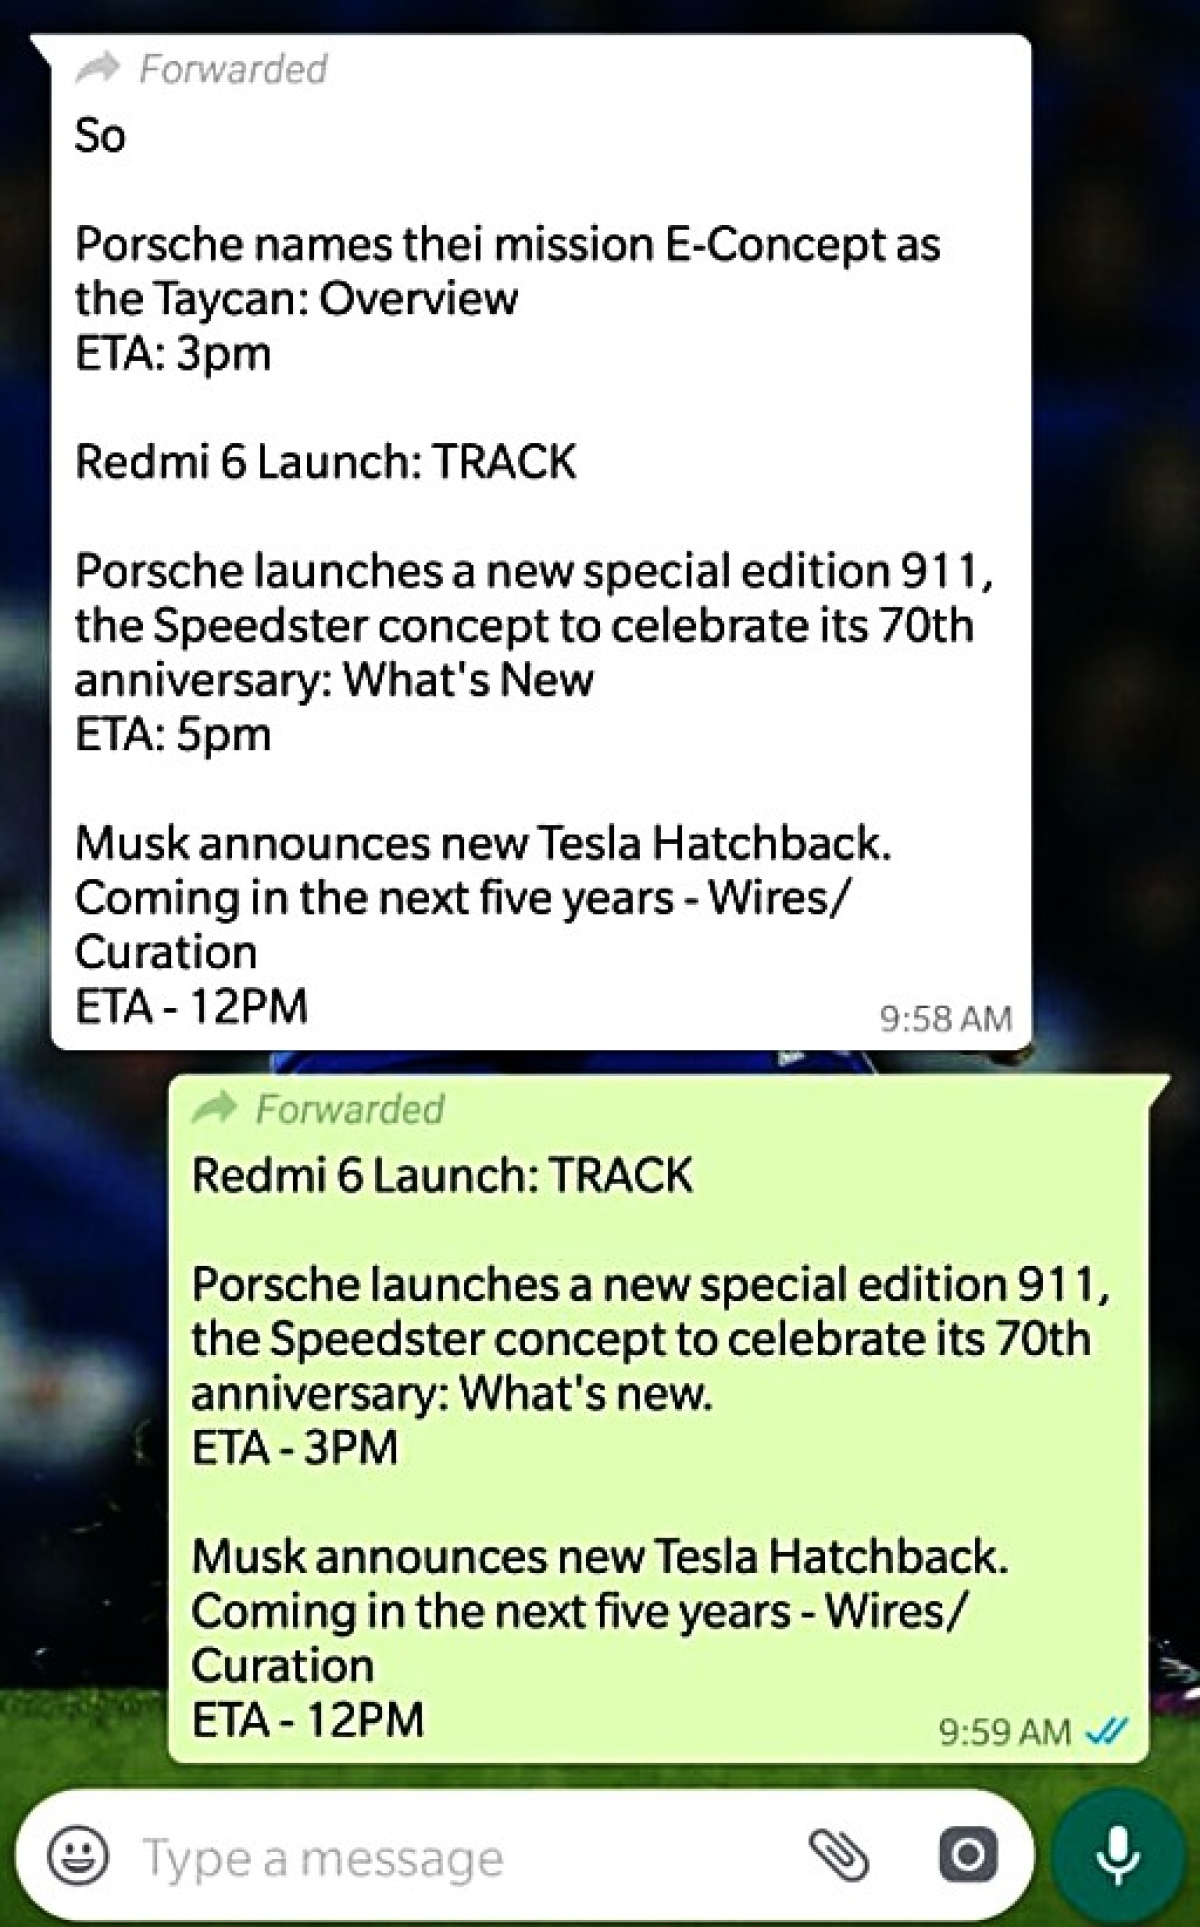 WhatsApp Now Lets You Know Which Messages Have Been Forwarded - The ...